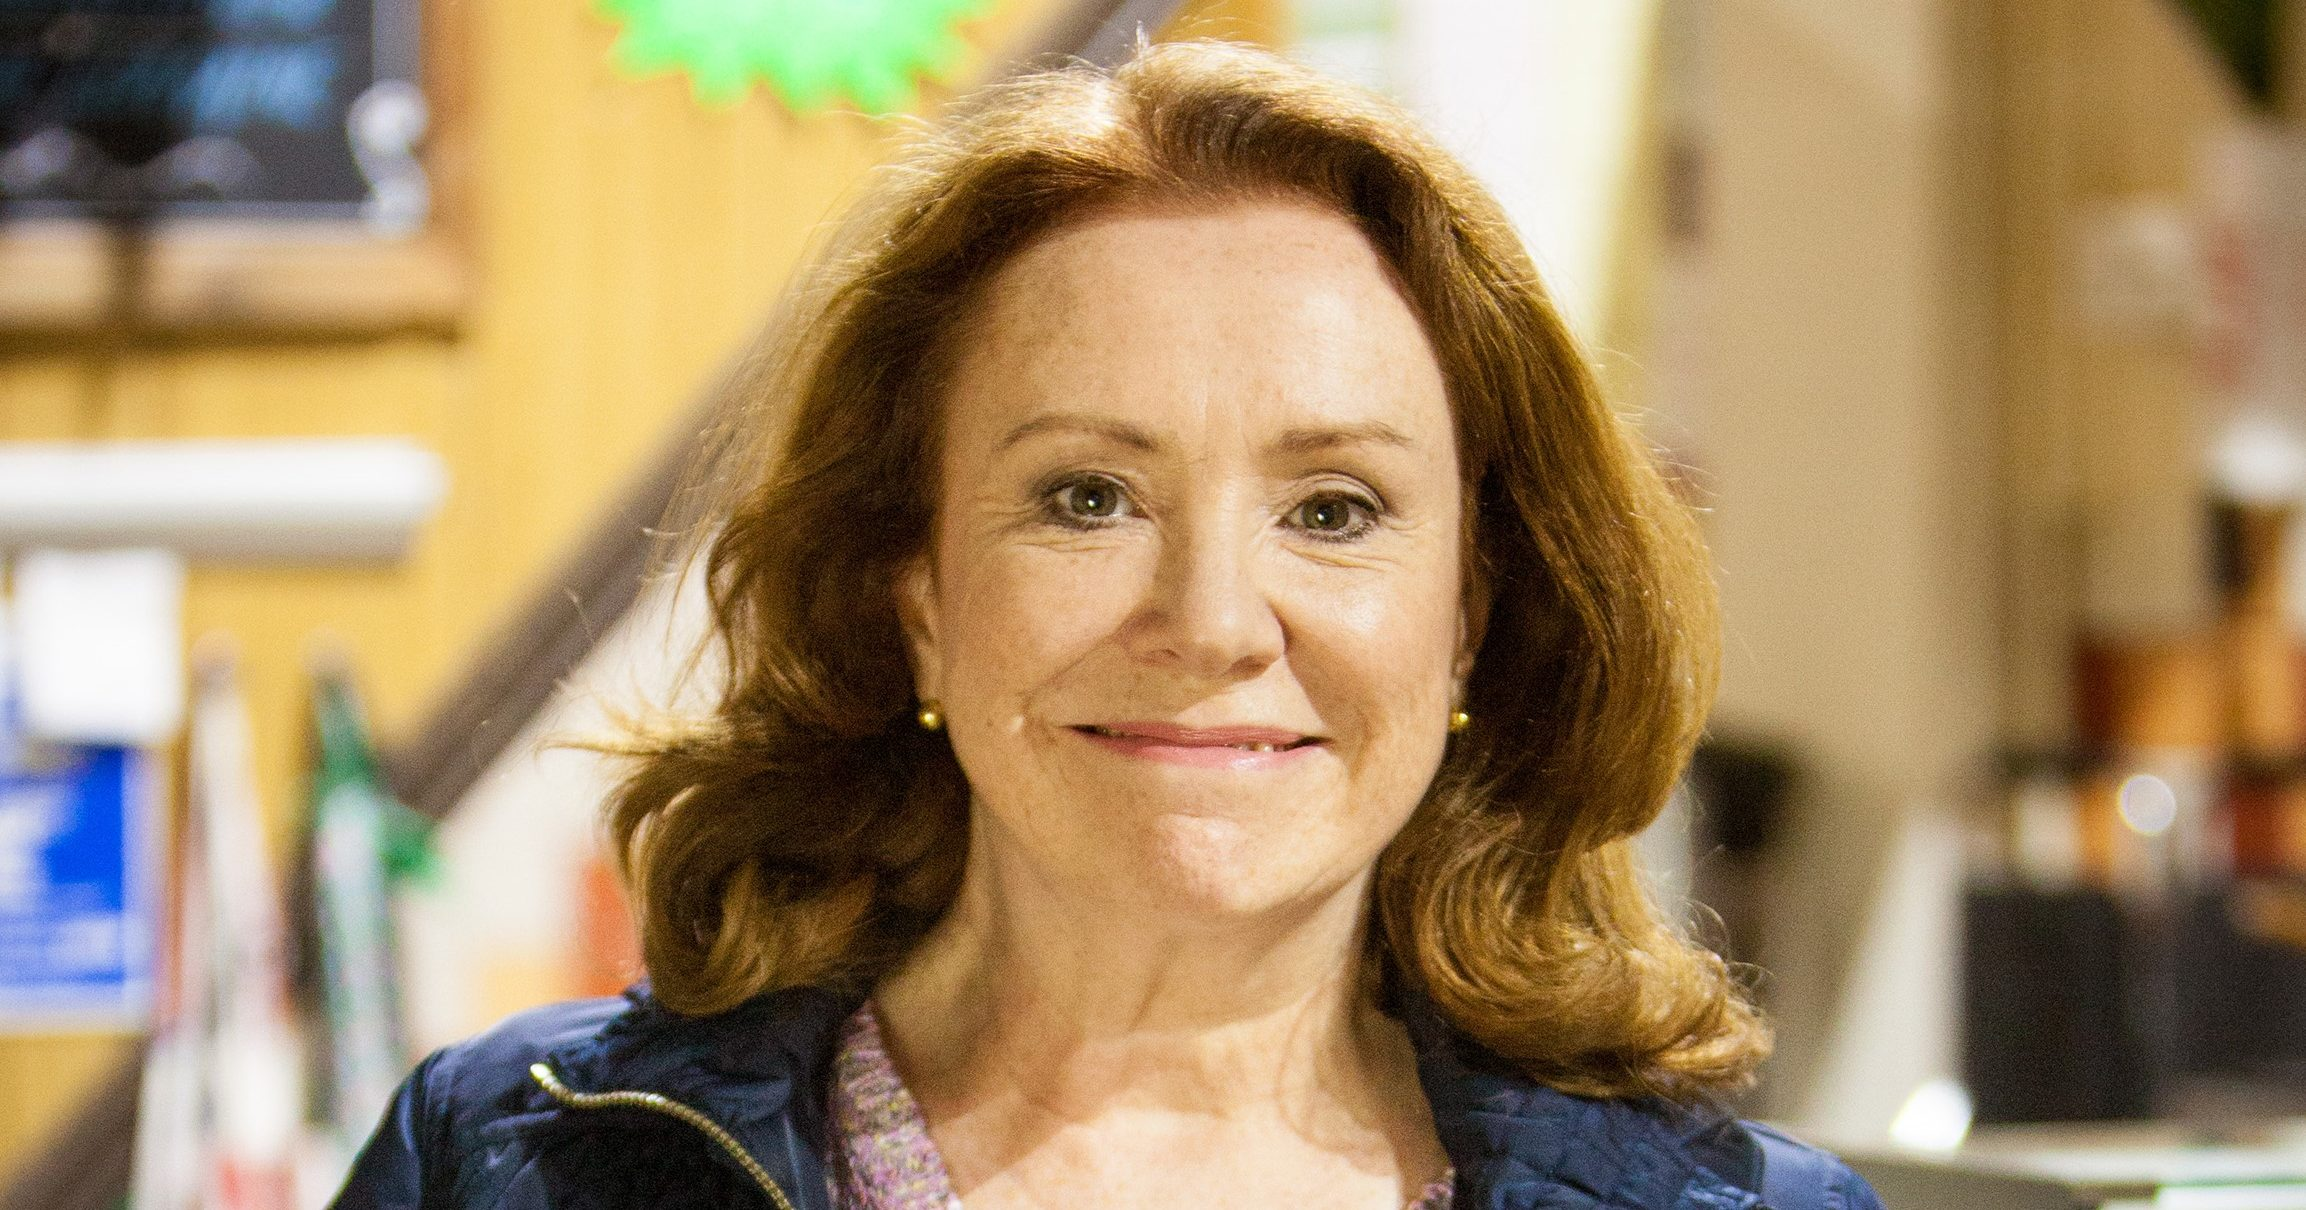 Melanie Hill appears to take a swipe at her Coronation Street storylines